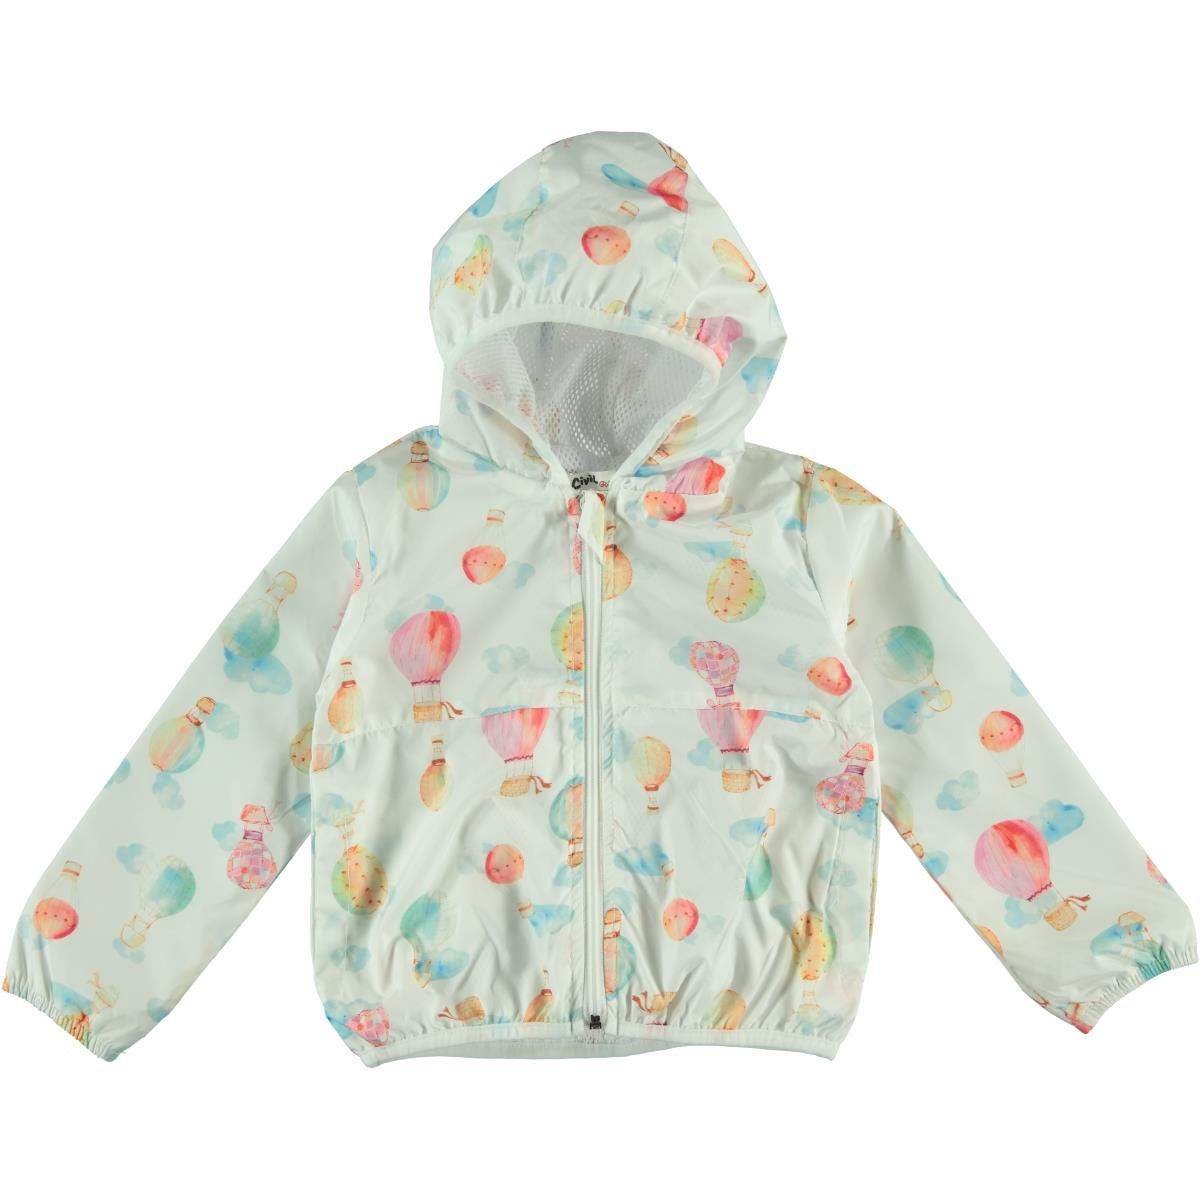 Civil Girls Girl's Hooded Raincoat Ecru 2-5 Years